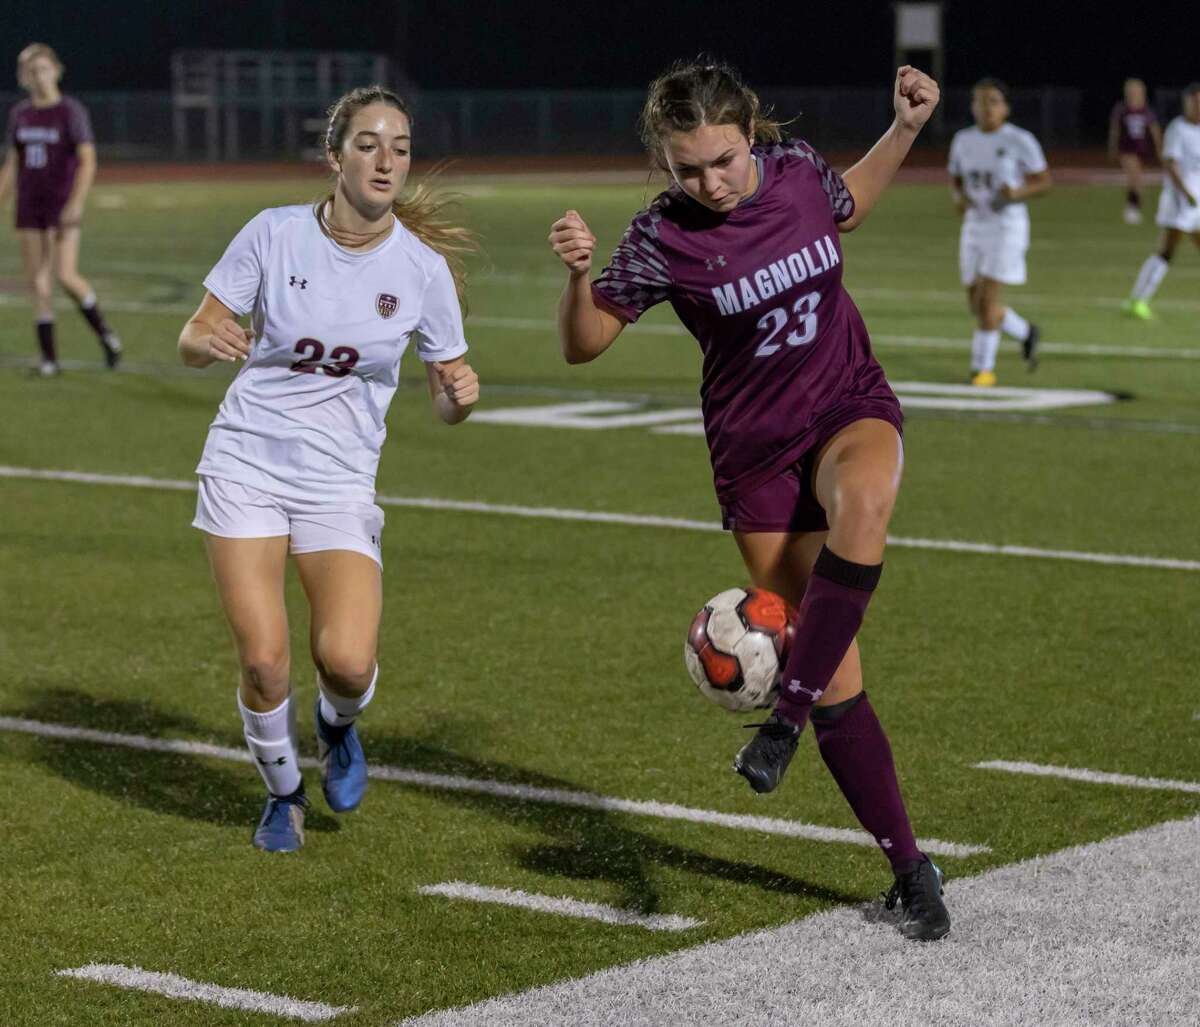 FILE PHOTO - Magnolia soccer player Sammie Guidie (23), seen here during a game last season, scored one of the Lady Bulldogs' seven goals against Sam Rayburn on Thursday.